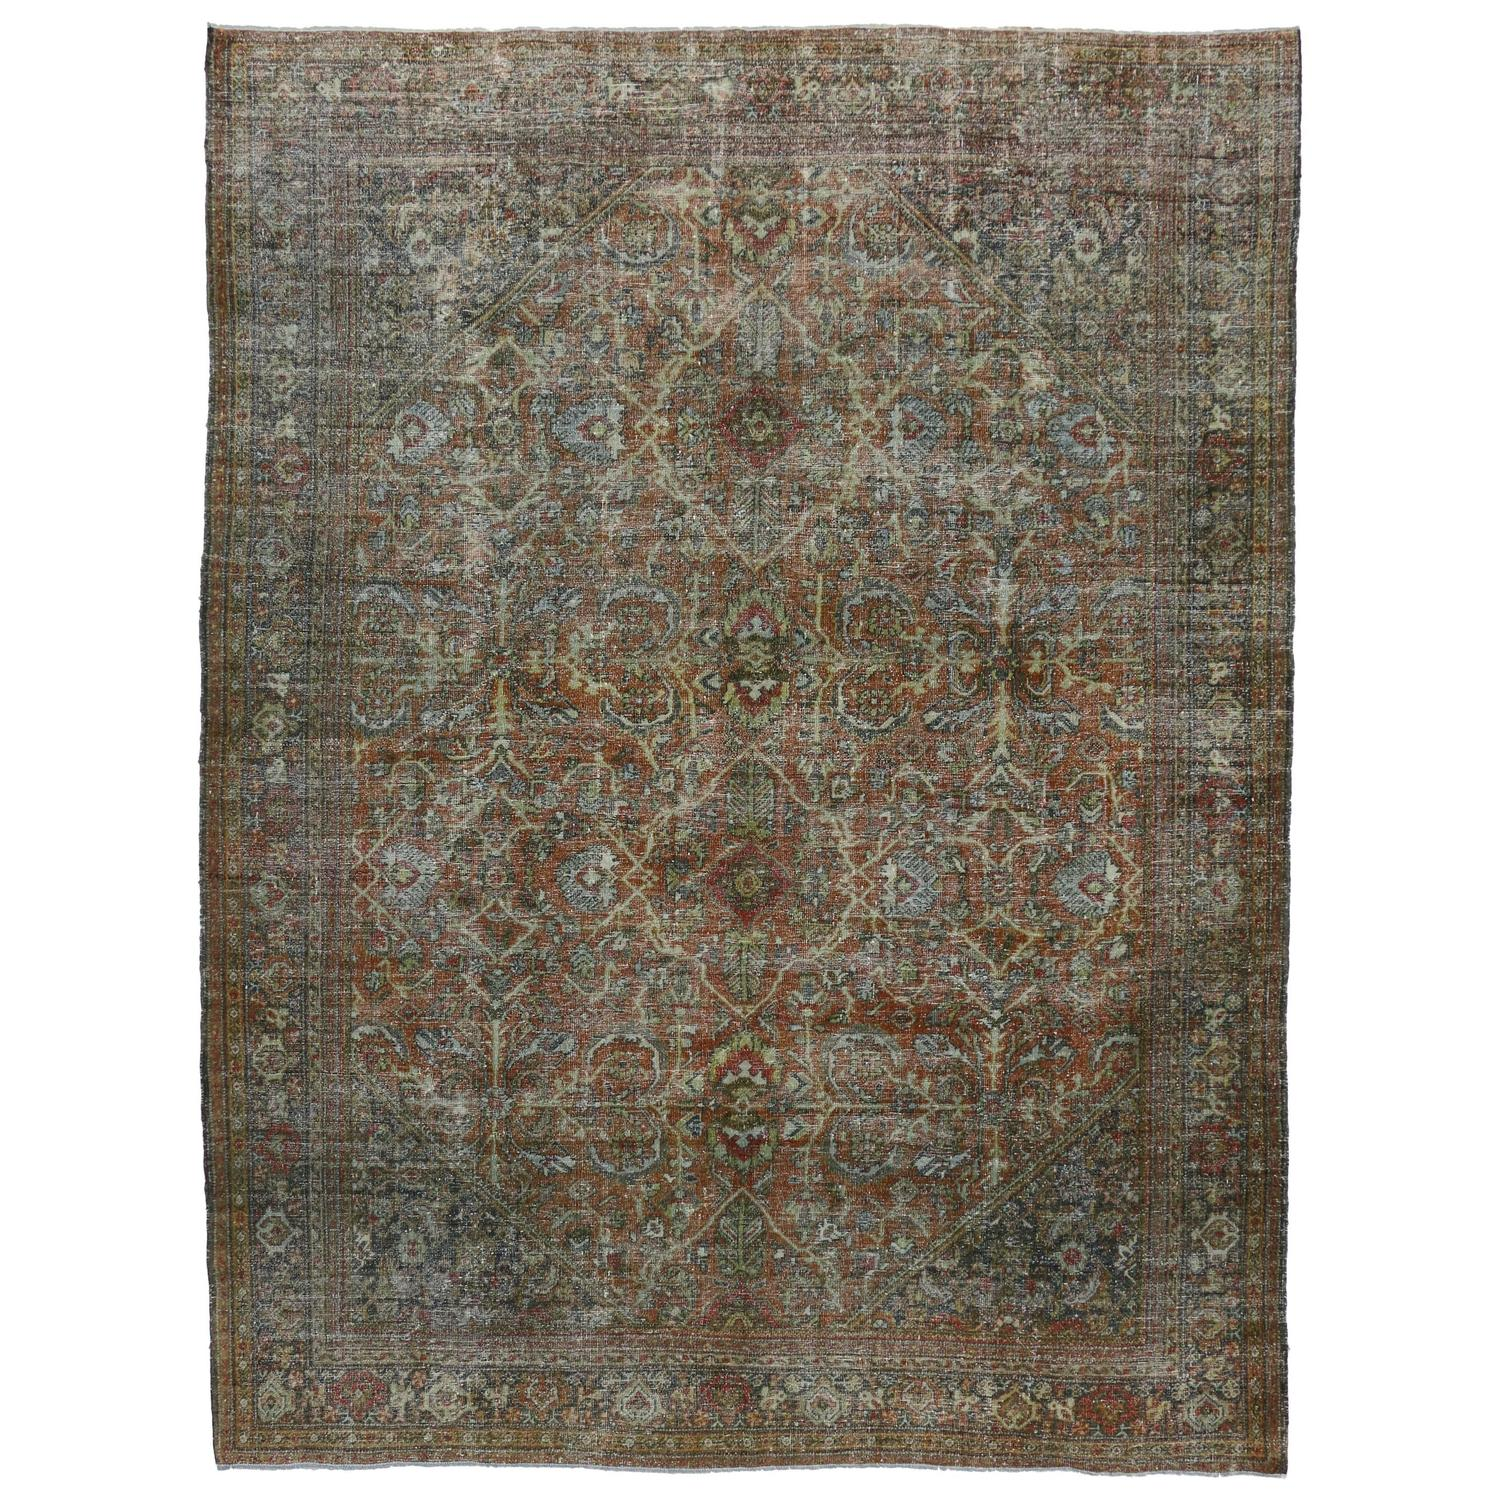 Distressed vintage persian mahal area rug with modern for Vintage style area rugs